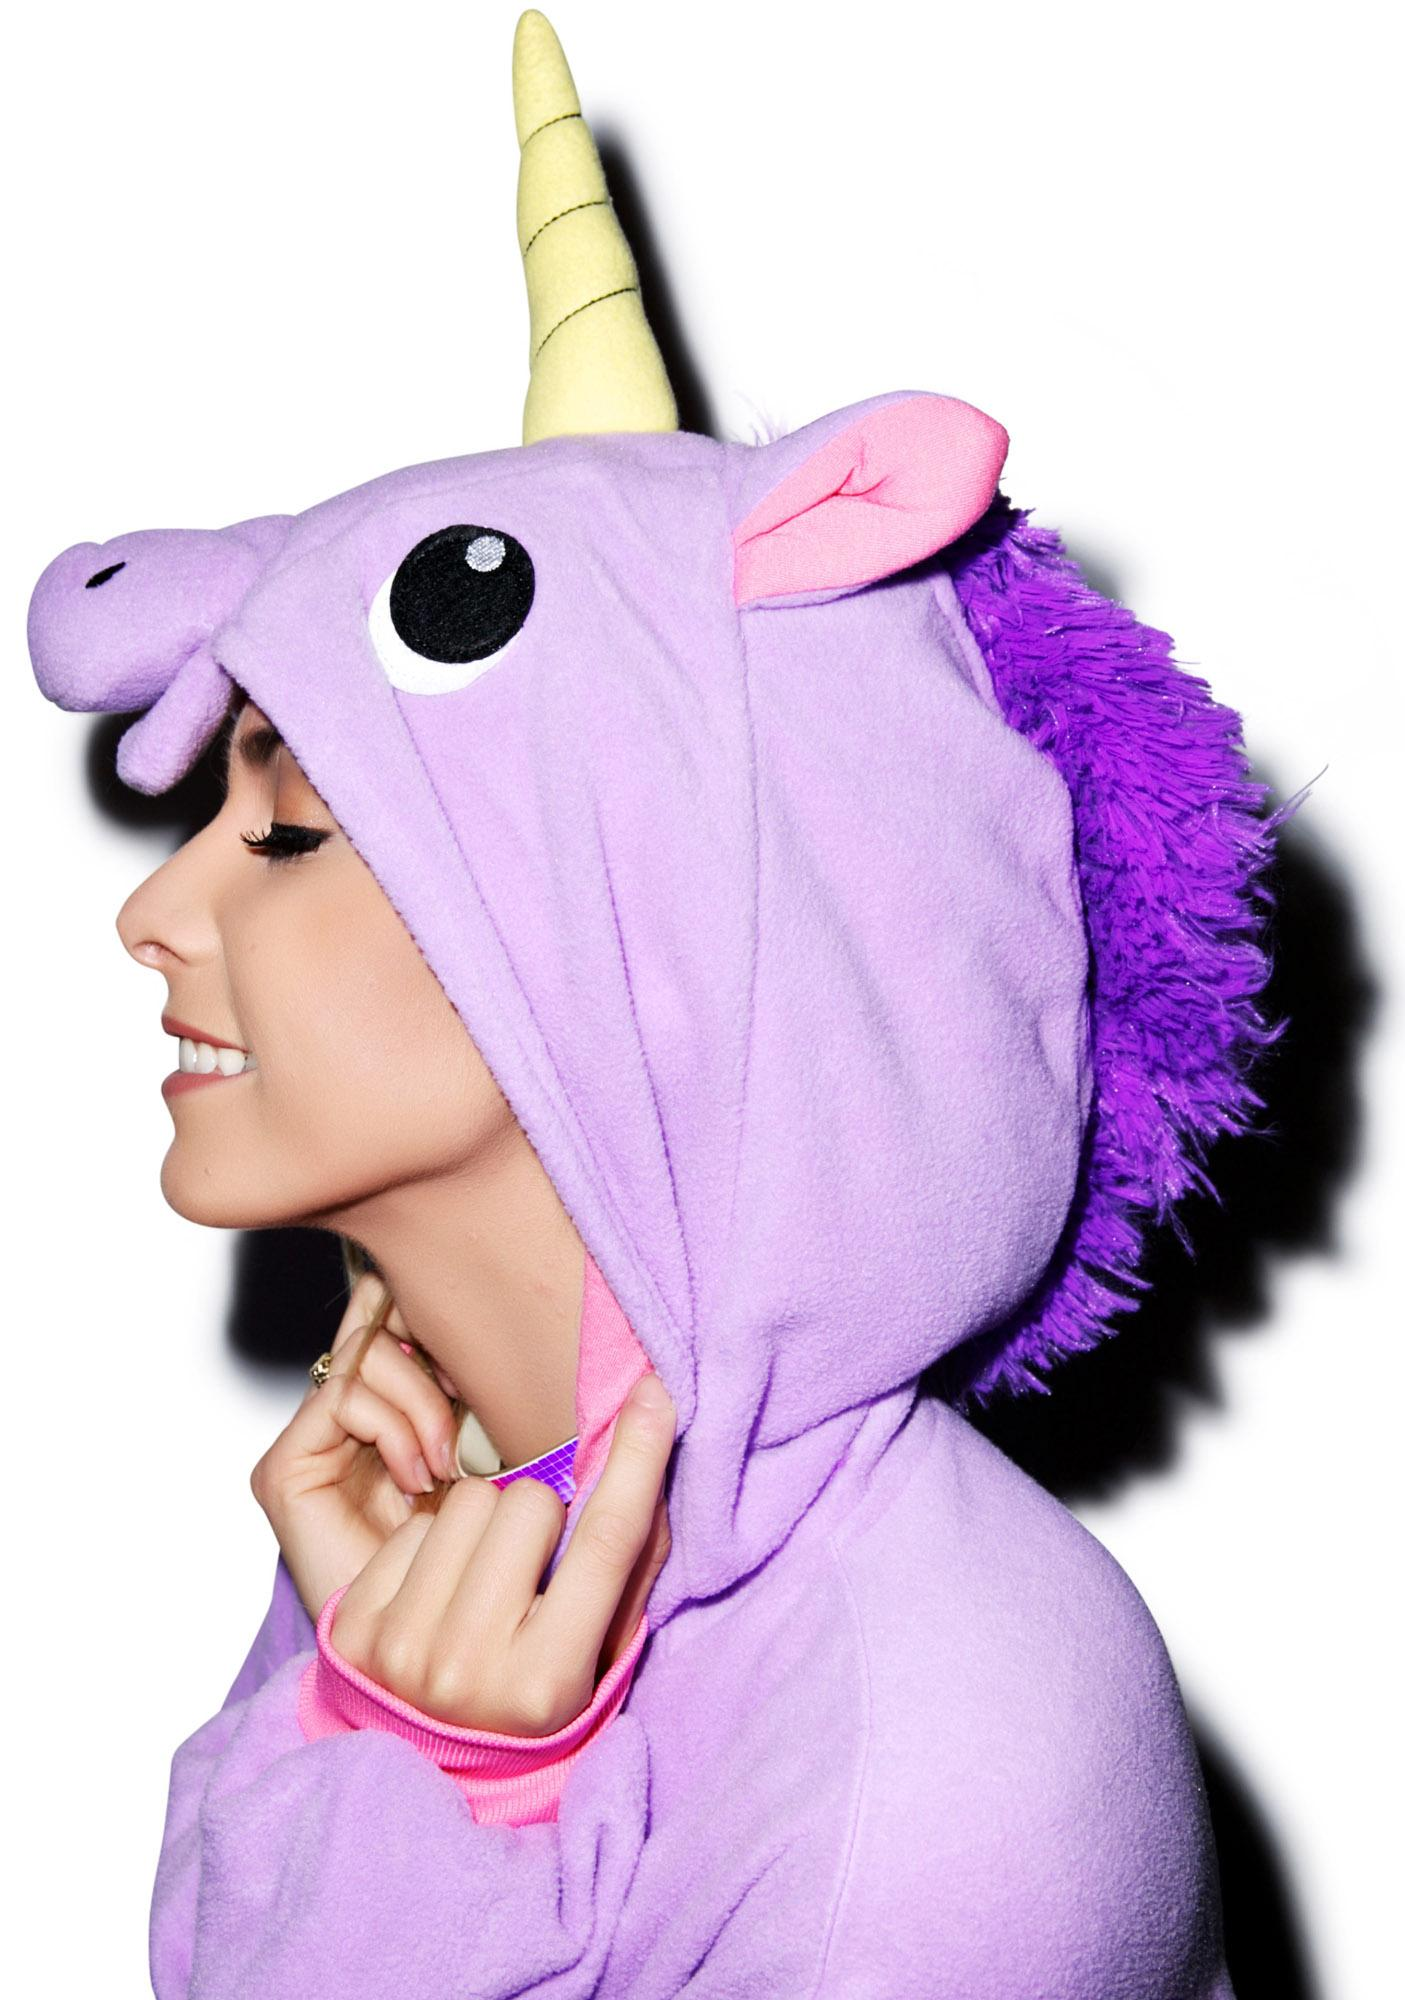 Get the best coupons, promo codes & deals for Kigurumi in at Wikibuy. Our community found 1 coupon and code for Kigurumi.